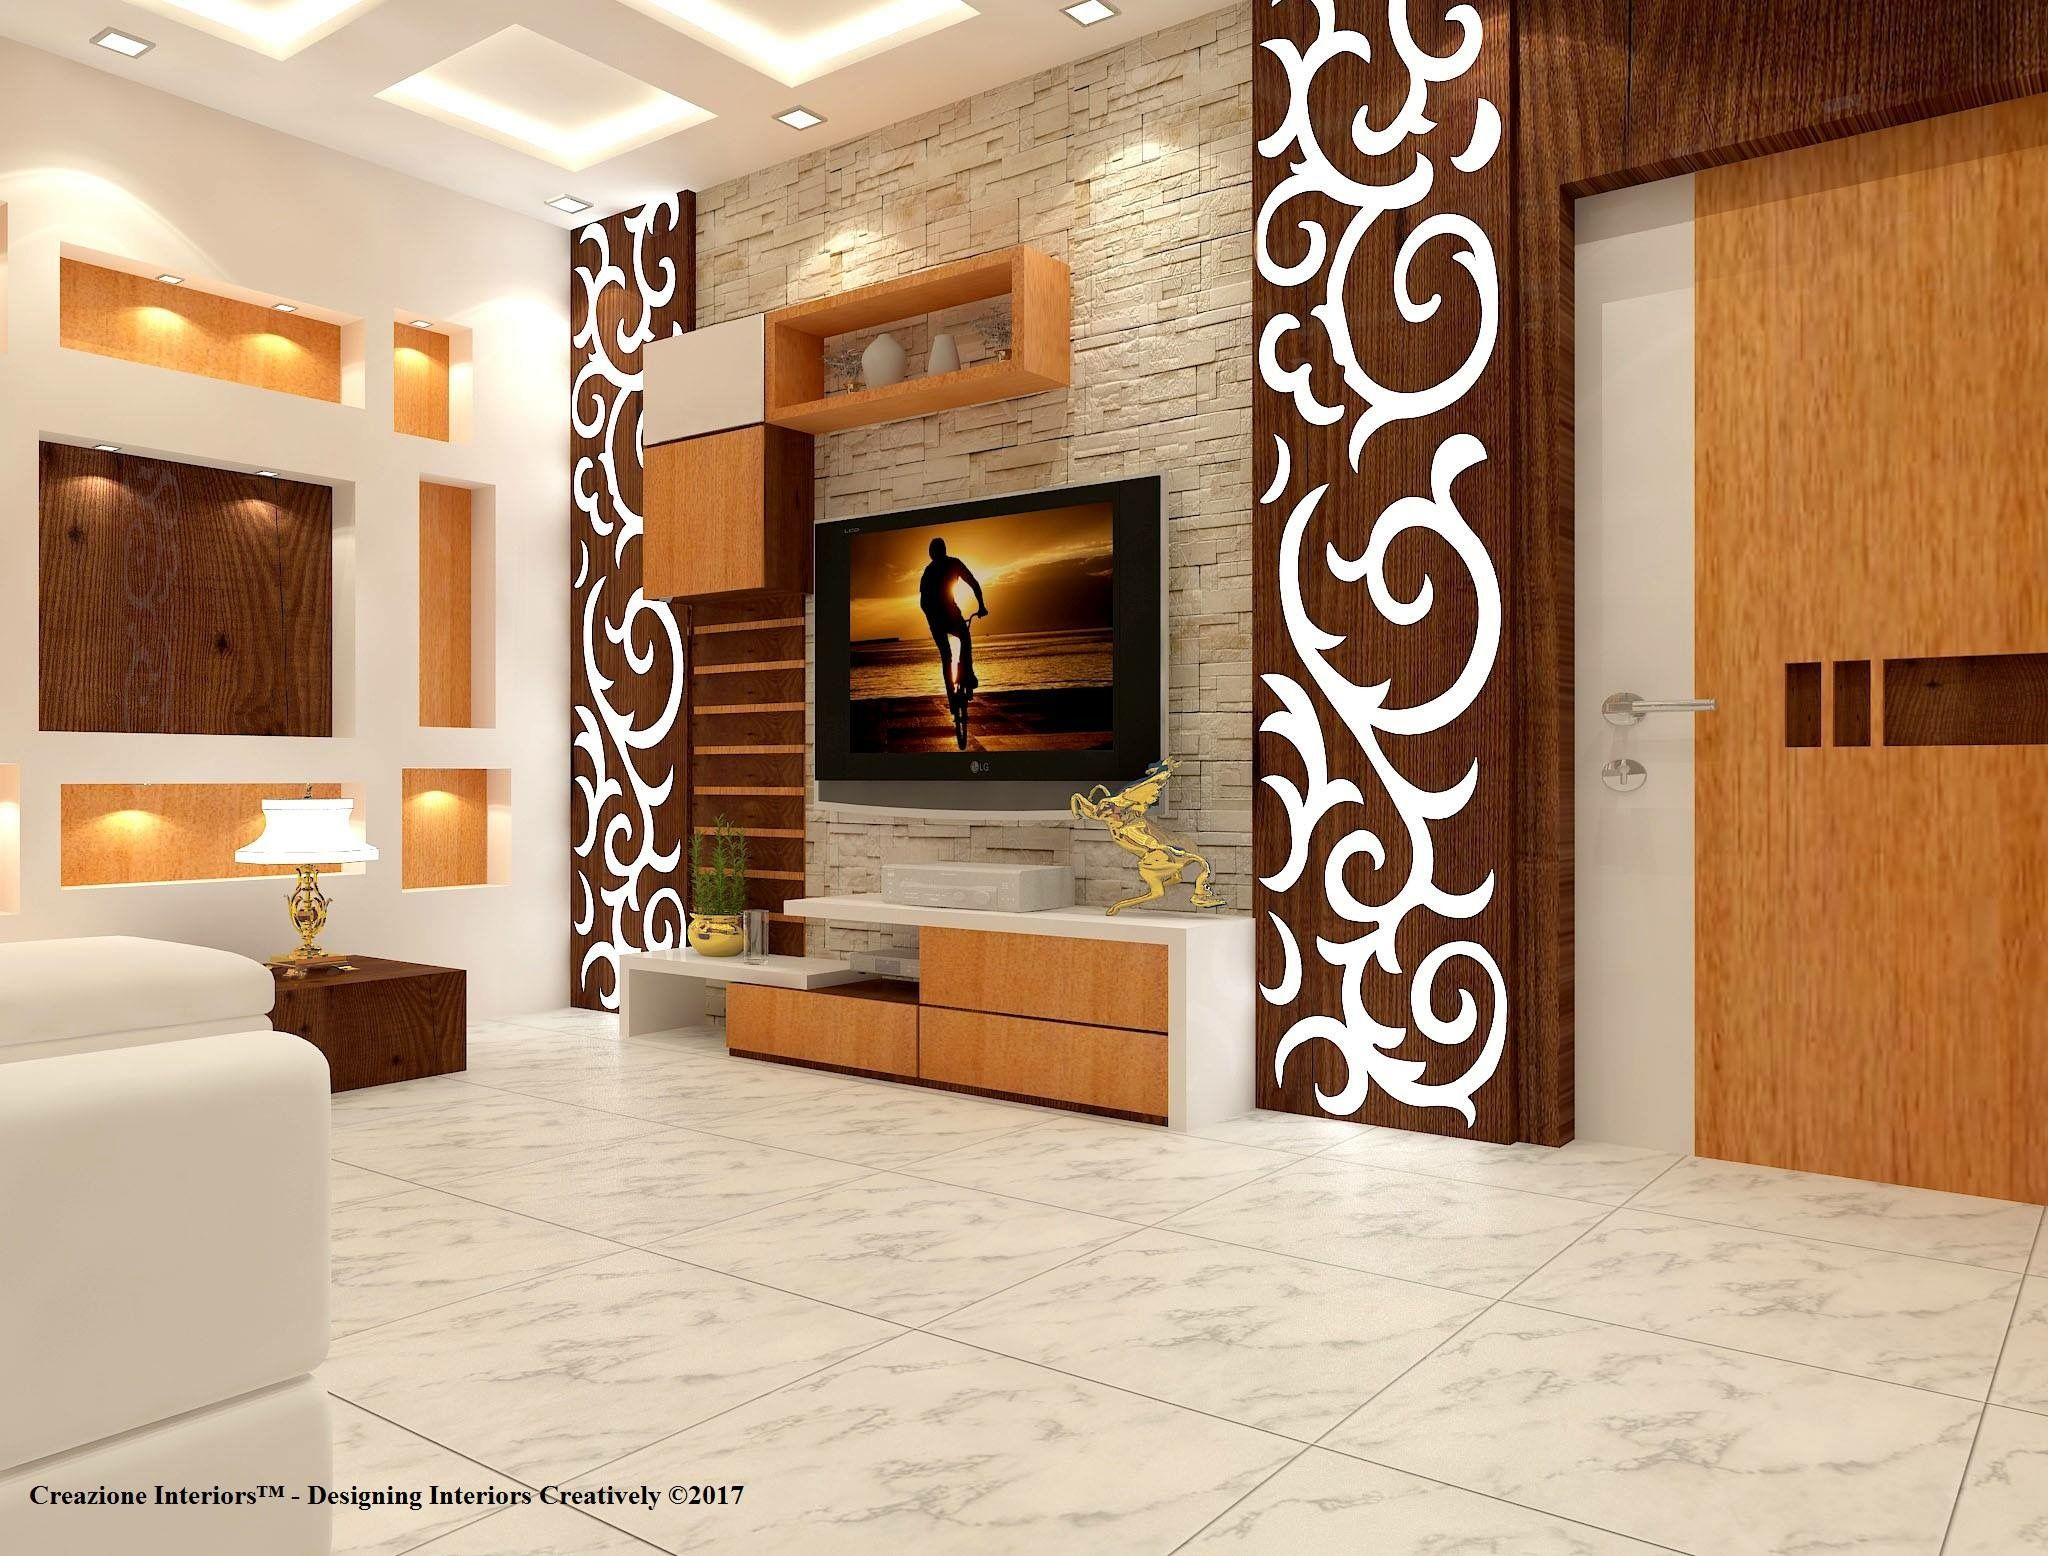 Wall design lcd wall design, ceiling design, siling decoration, wall units for tv,  modern BOTDSXV